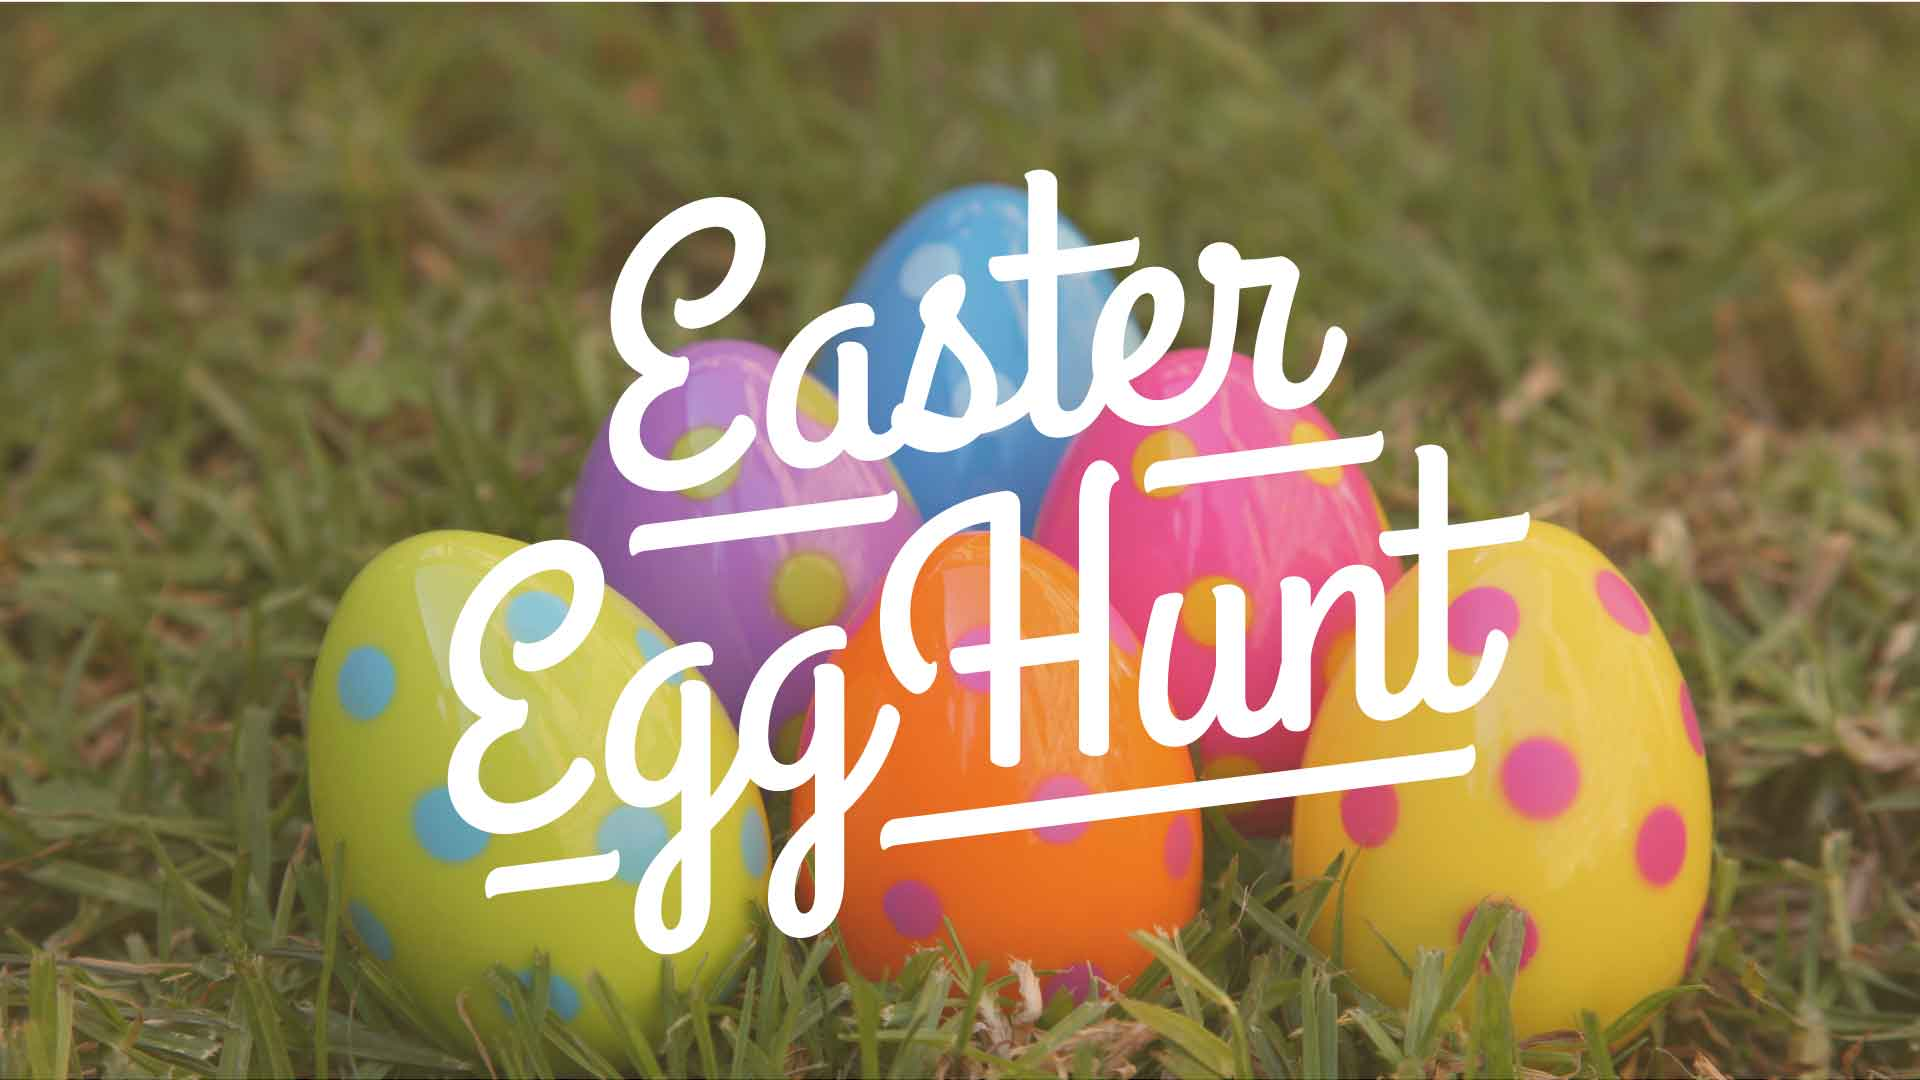 Easter Egg Hunt graphic for event